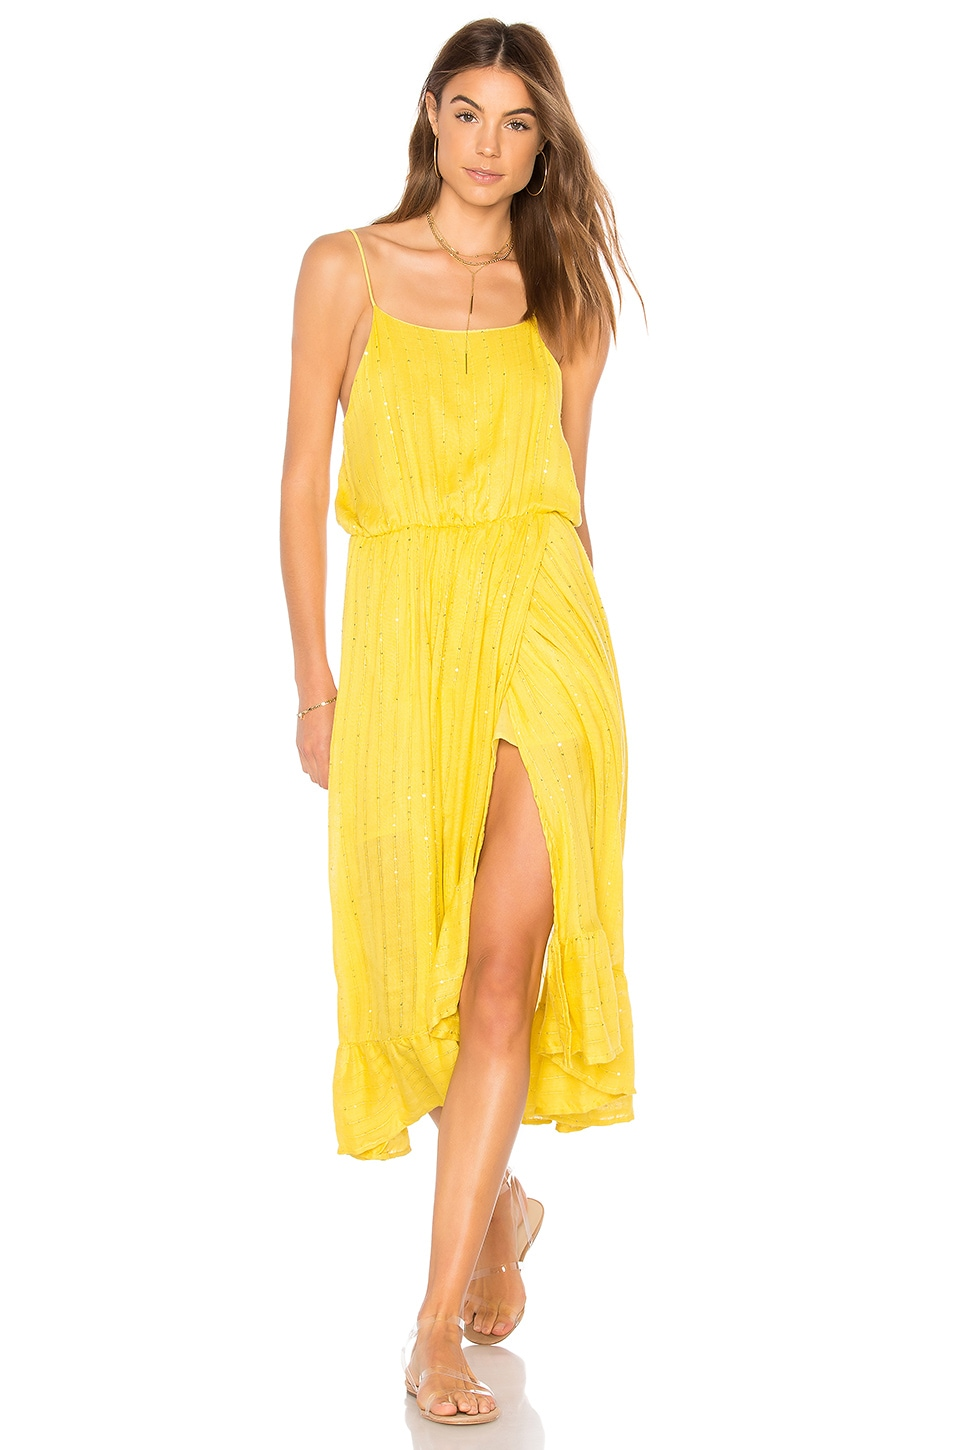 Sundress Angelique Dress in Precieuse Yellow